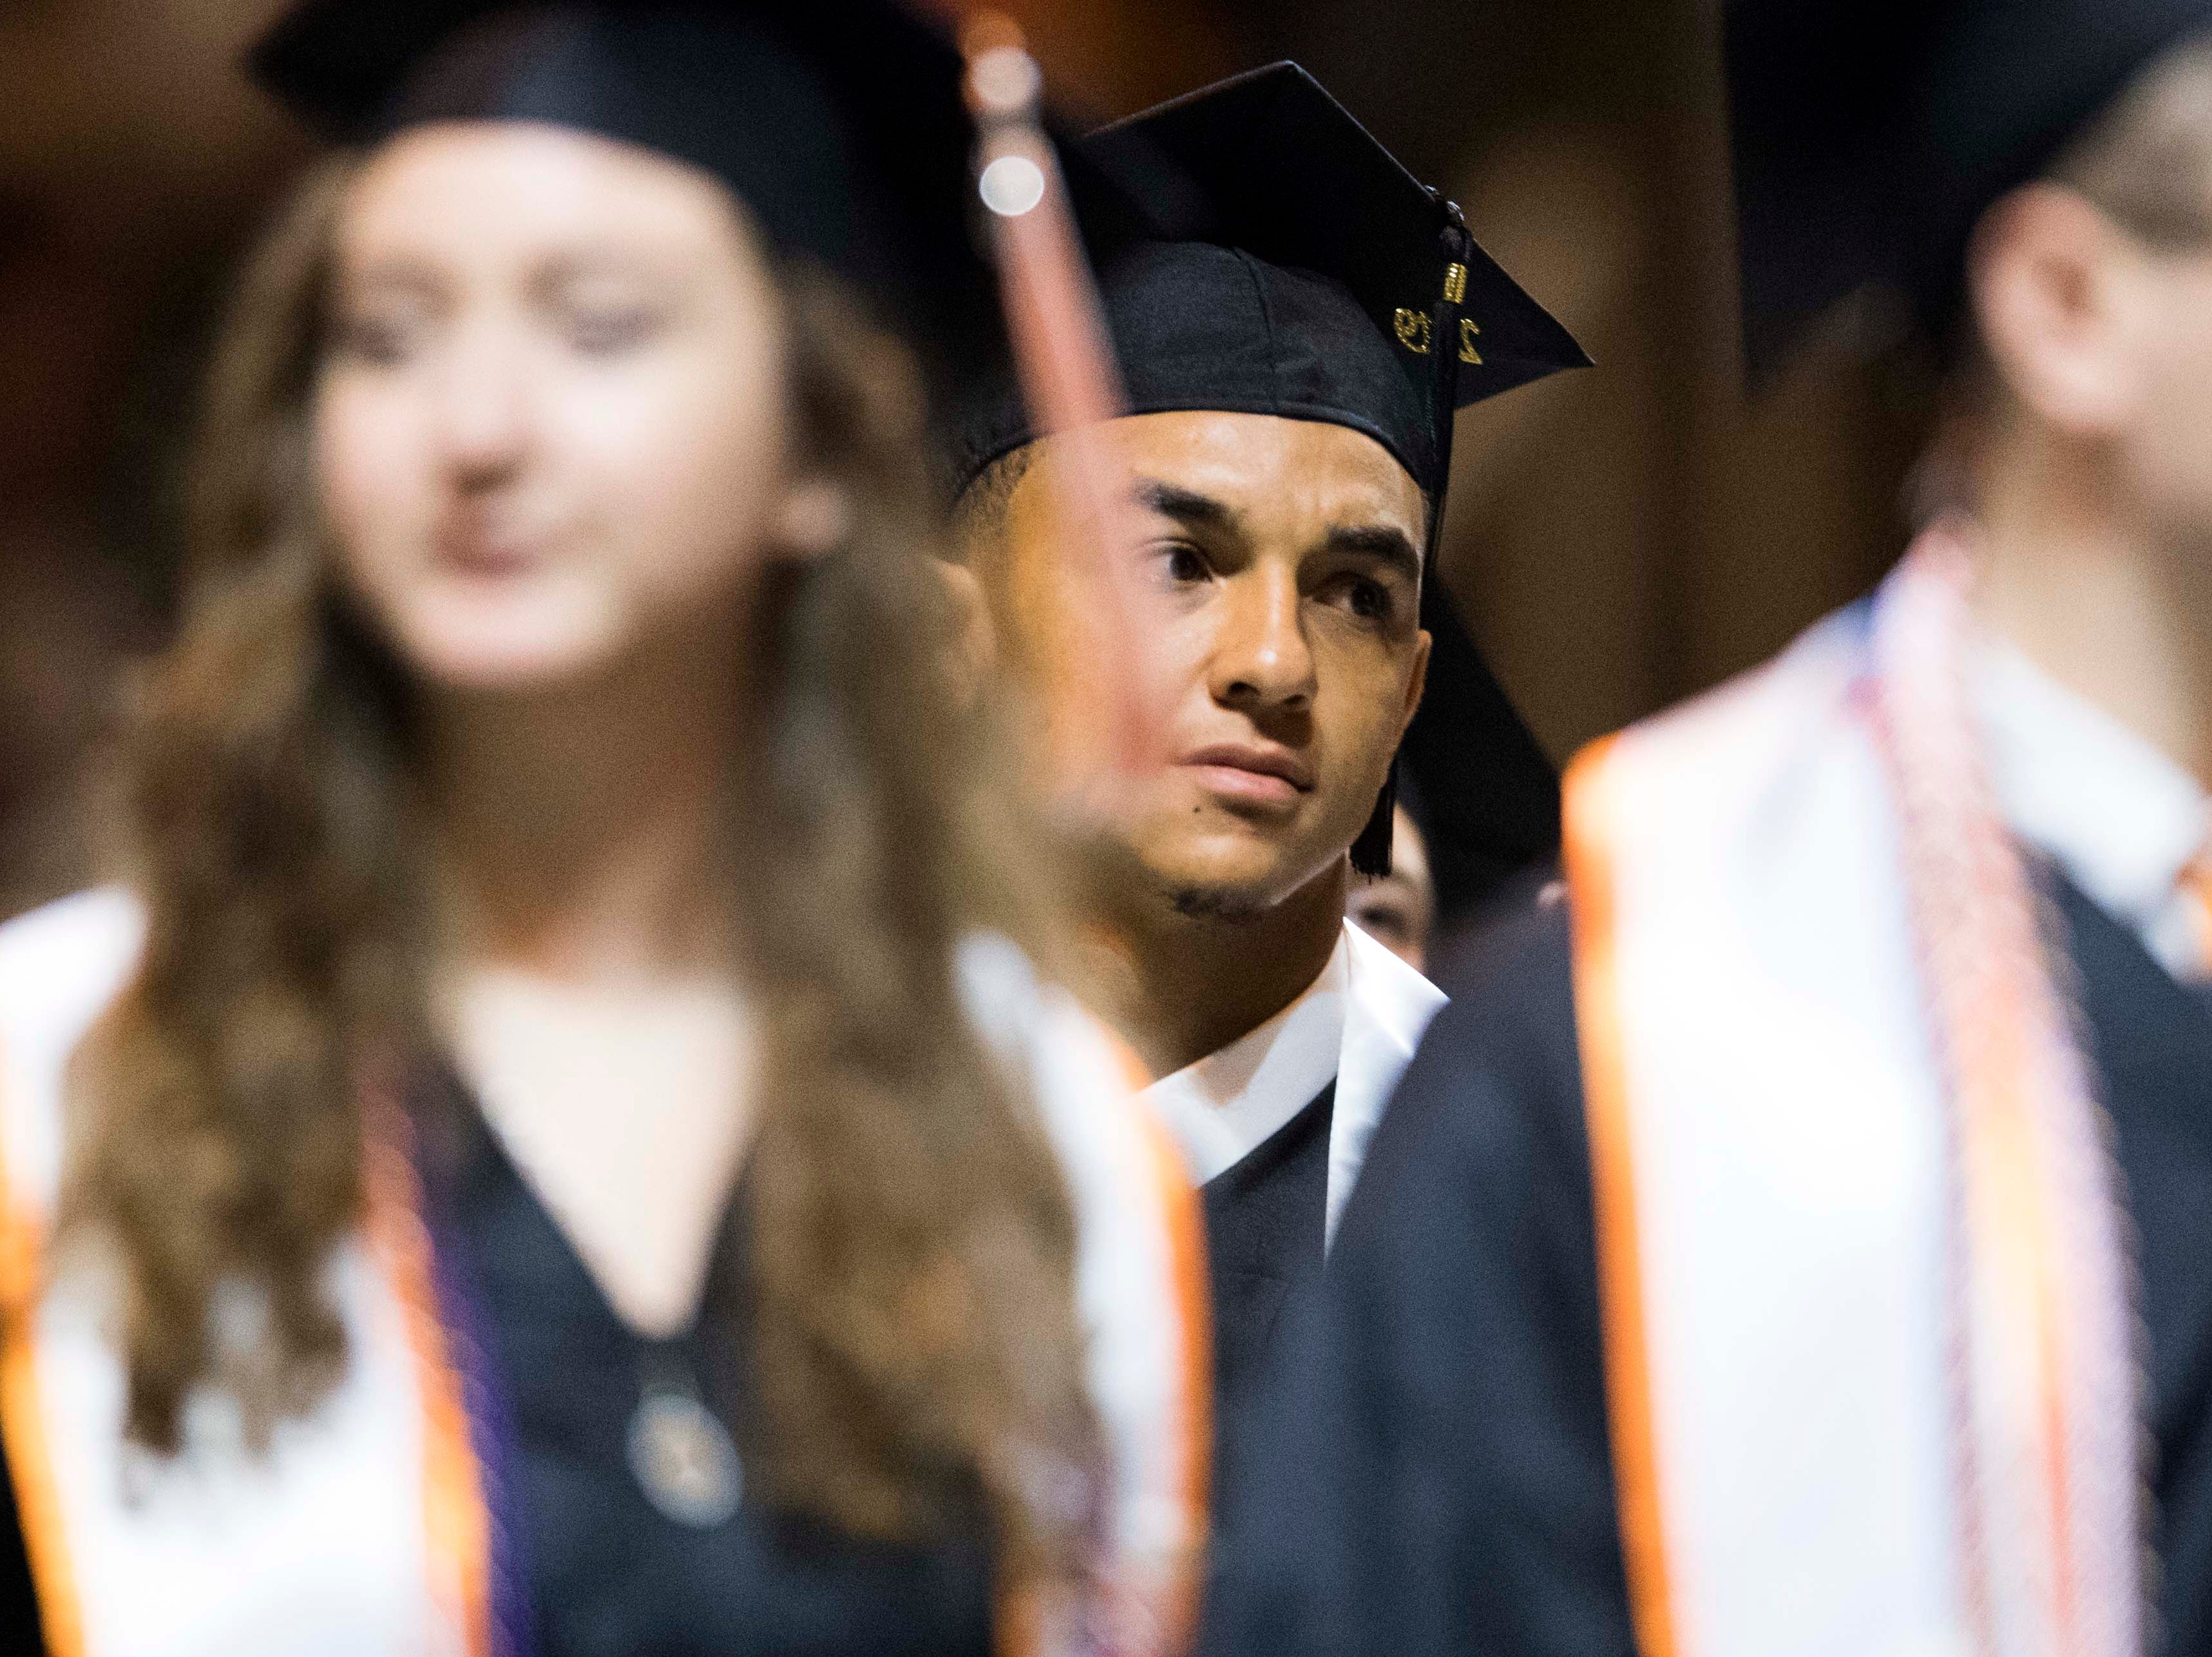 Tennessee quarterback Jarret Guarantano stands with other students after walking across the stage during University of Tennessee's College of Arts and Sciences commencement in Thompson-Boling arena in Knoxville, Saturday, May 11, 2019.